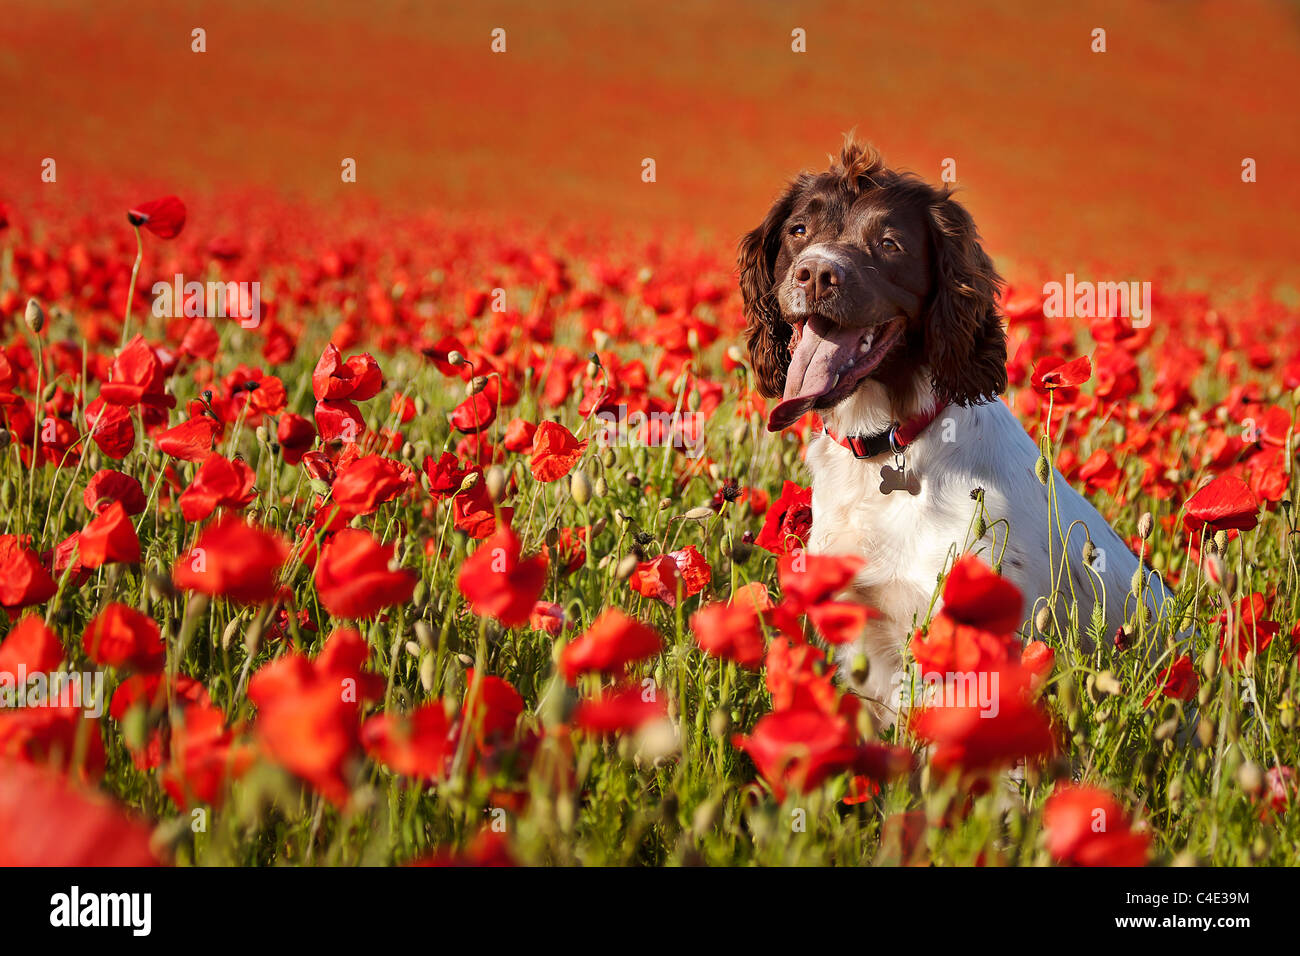 dog on poppy field - Stock Image